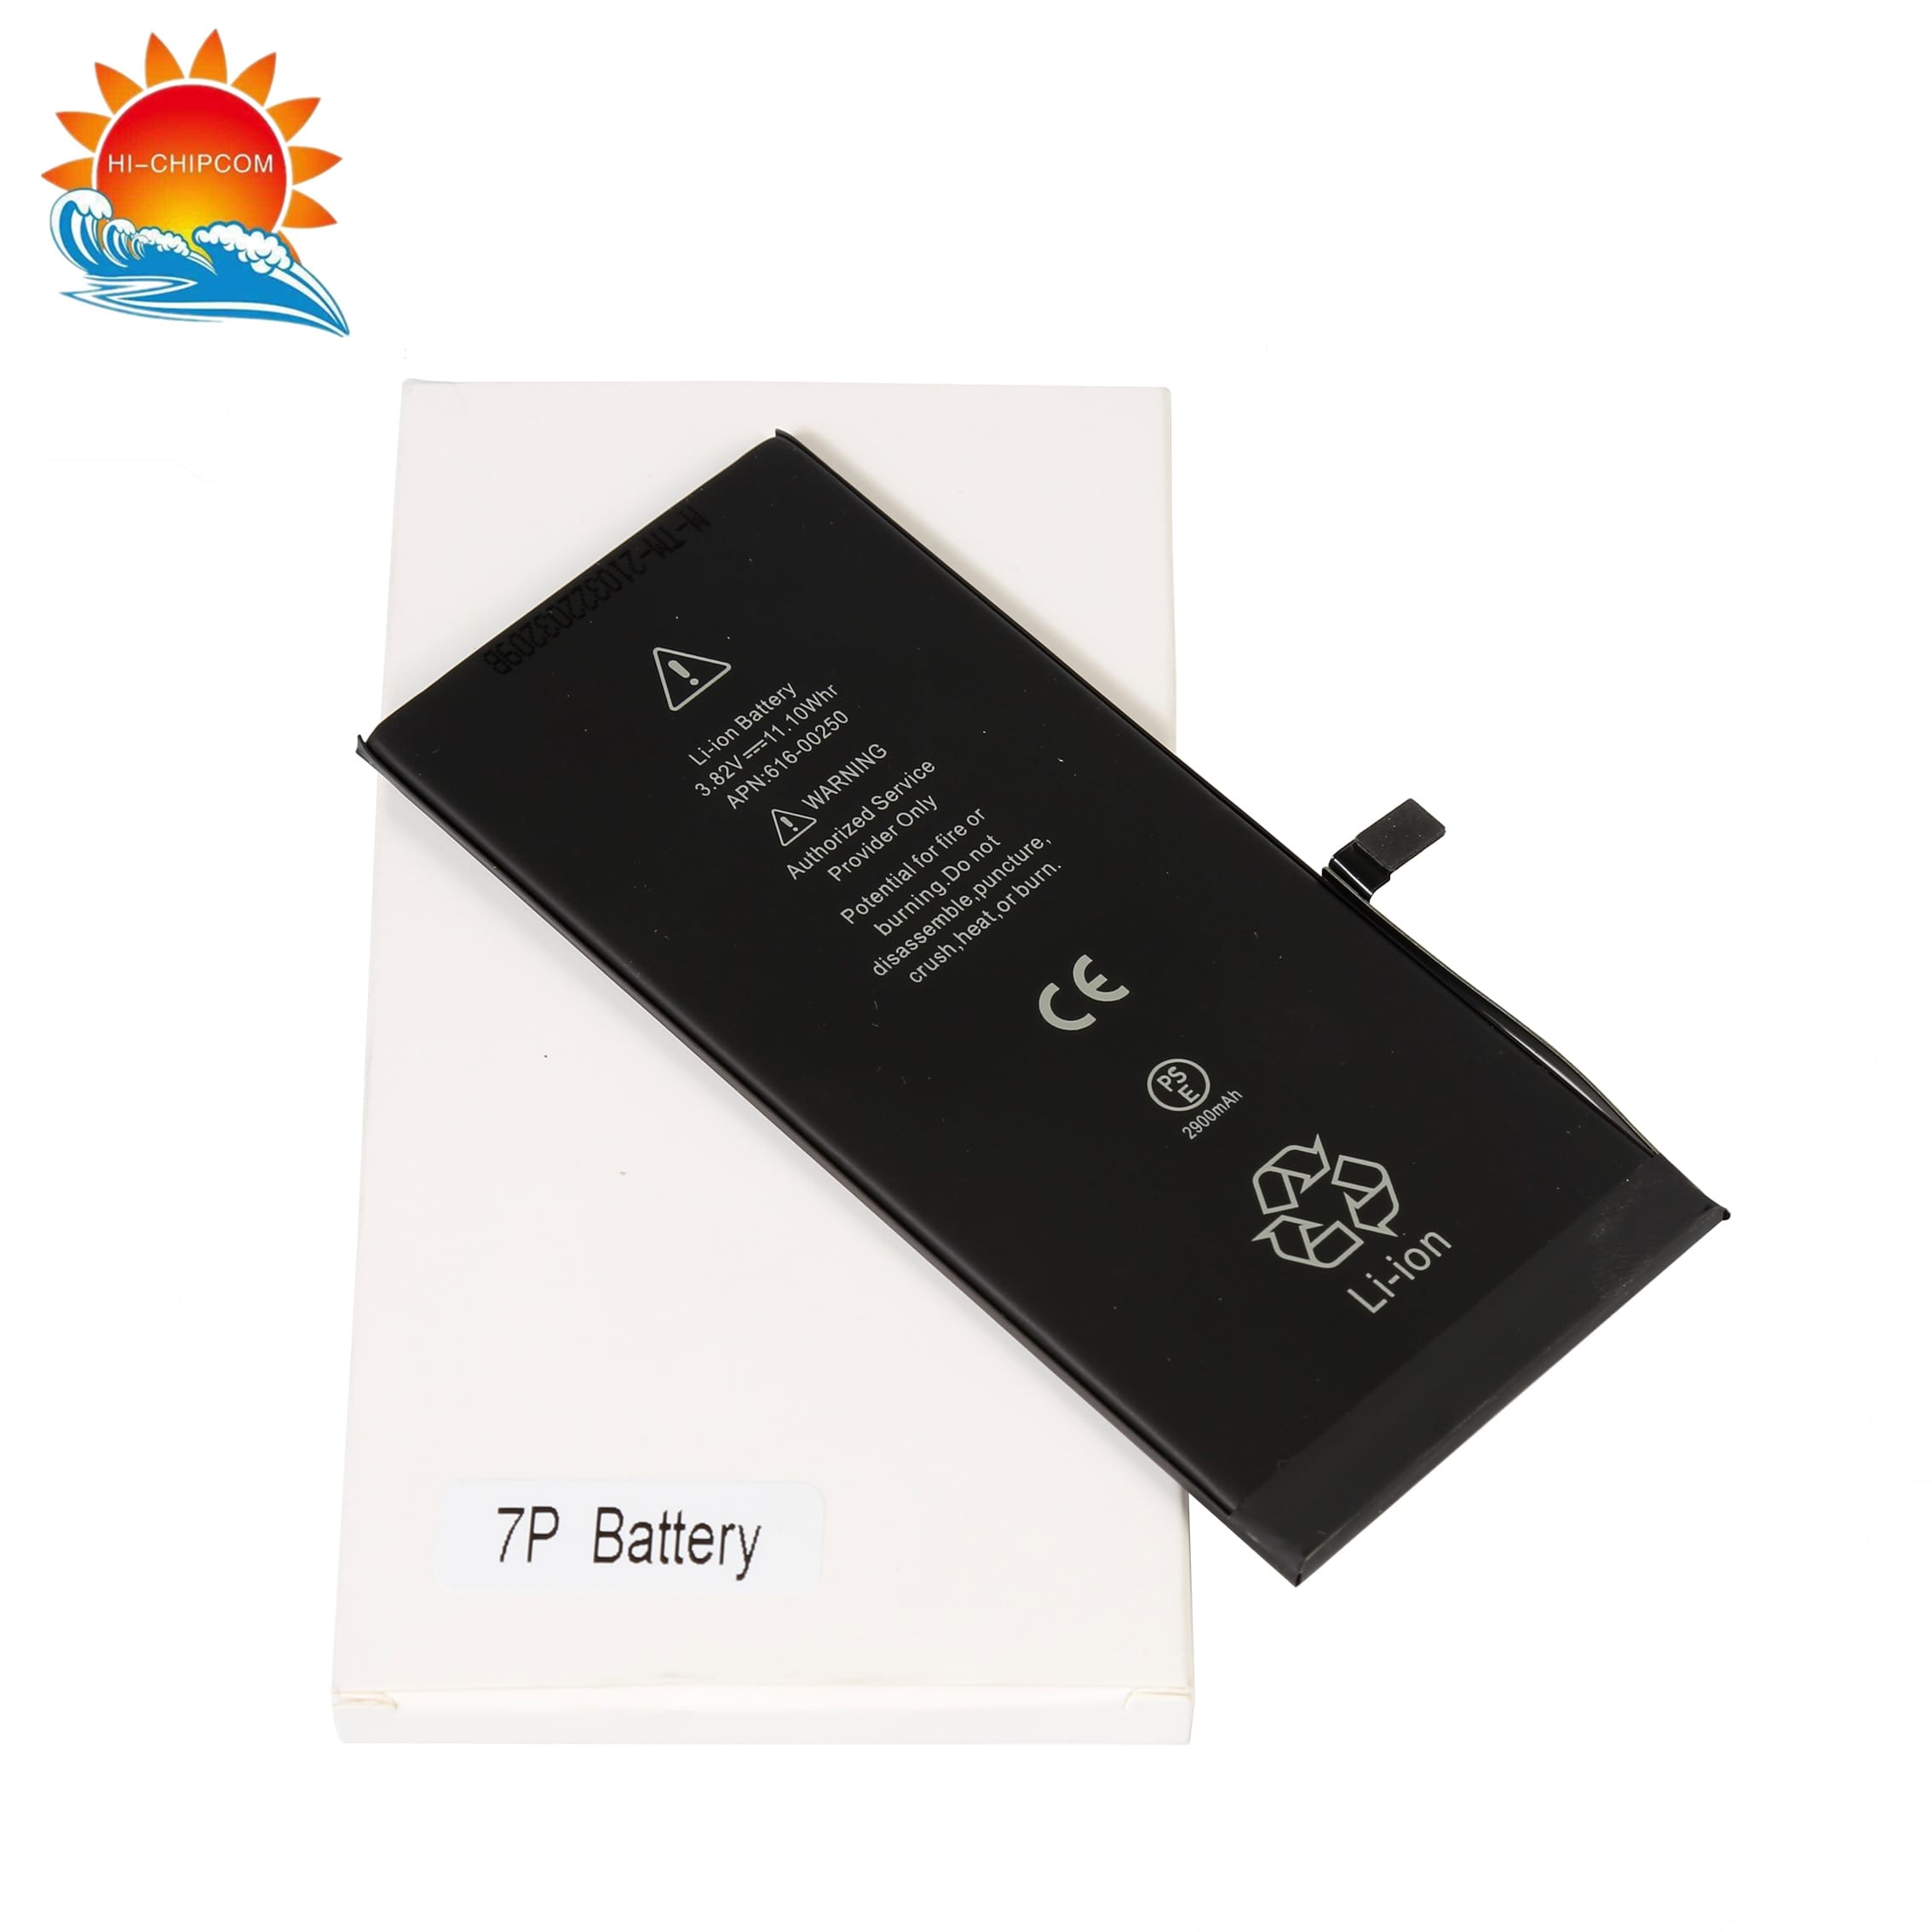 High Capacity Battery for iPhone 7 Plus